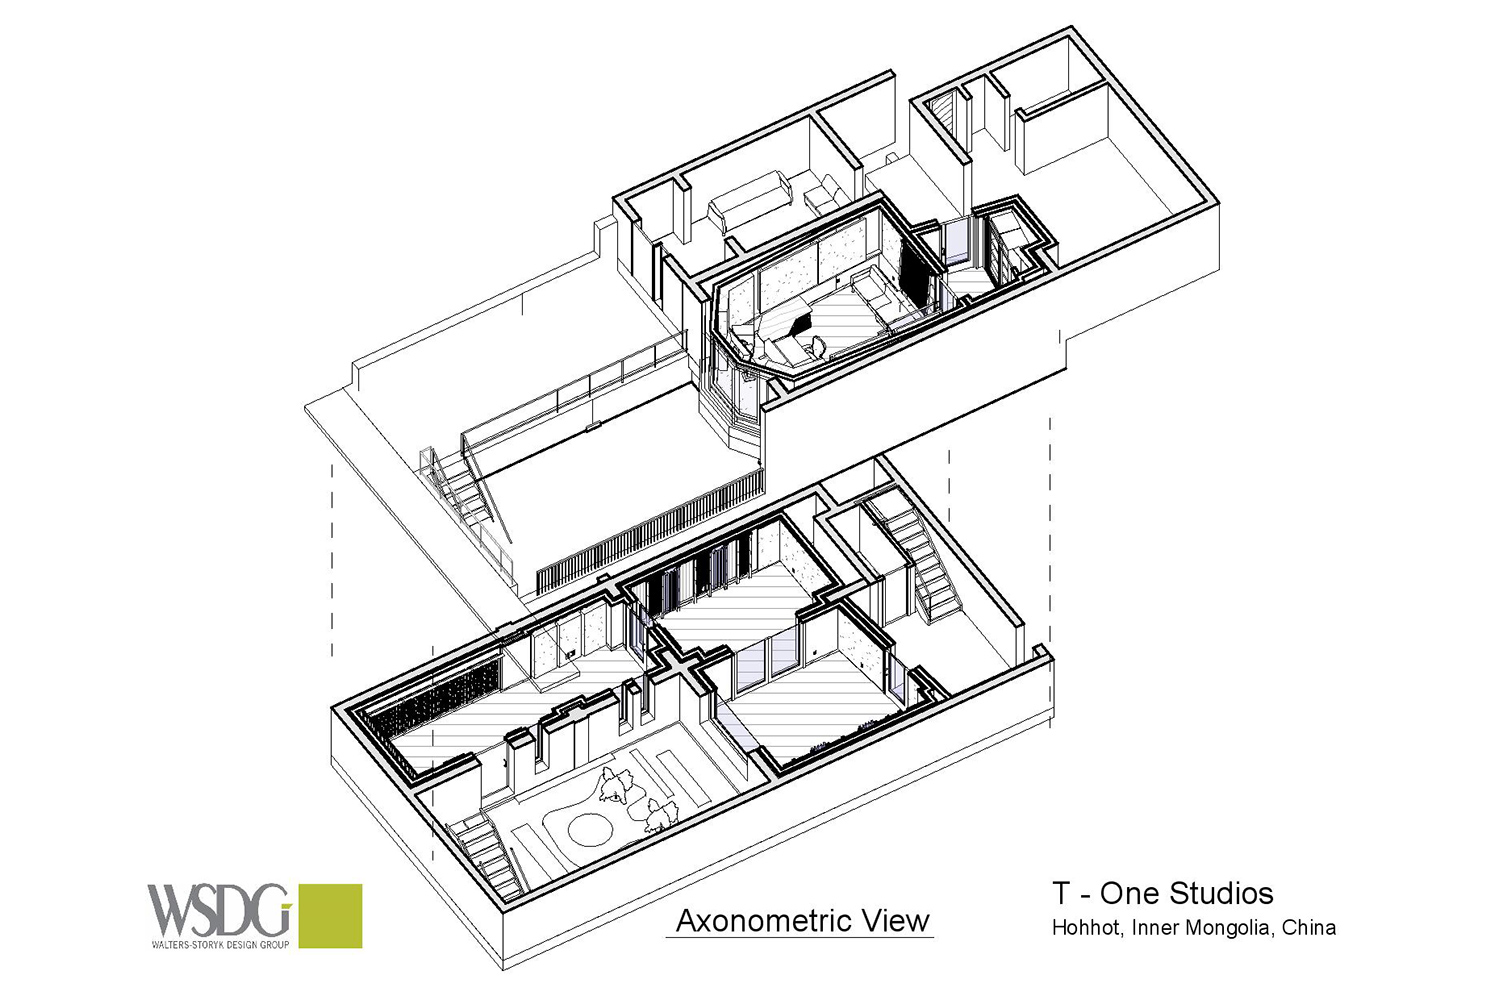 WSDG axonometric view for T-One Studios in Hohhot, China.